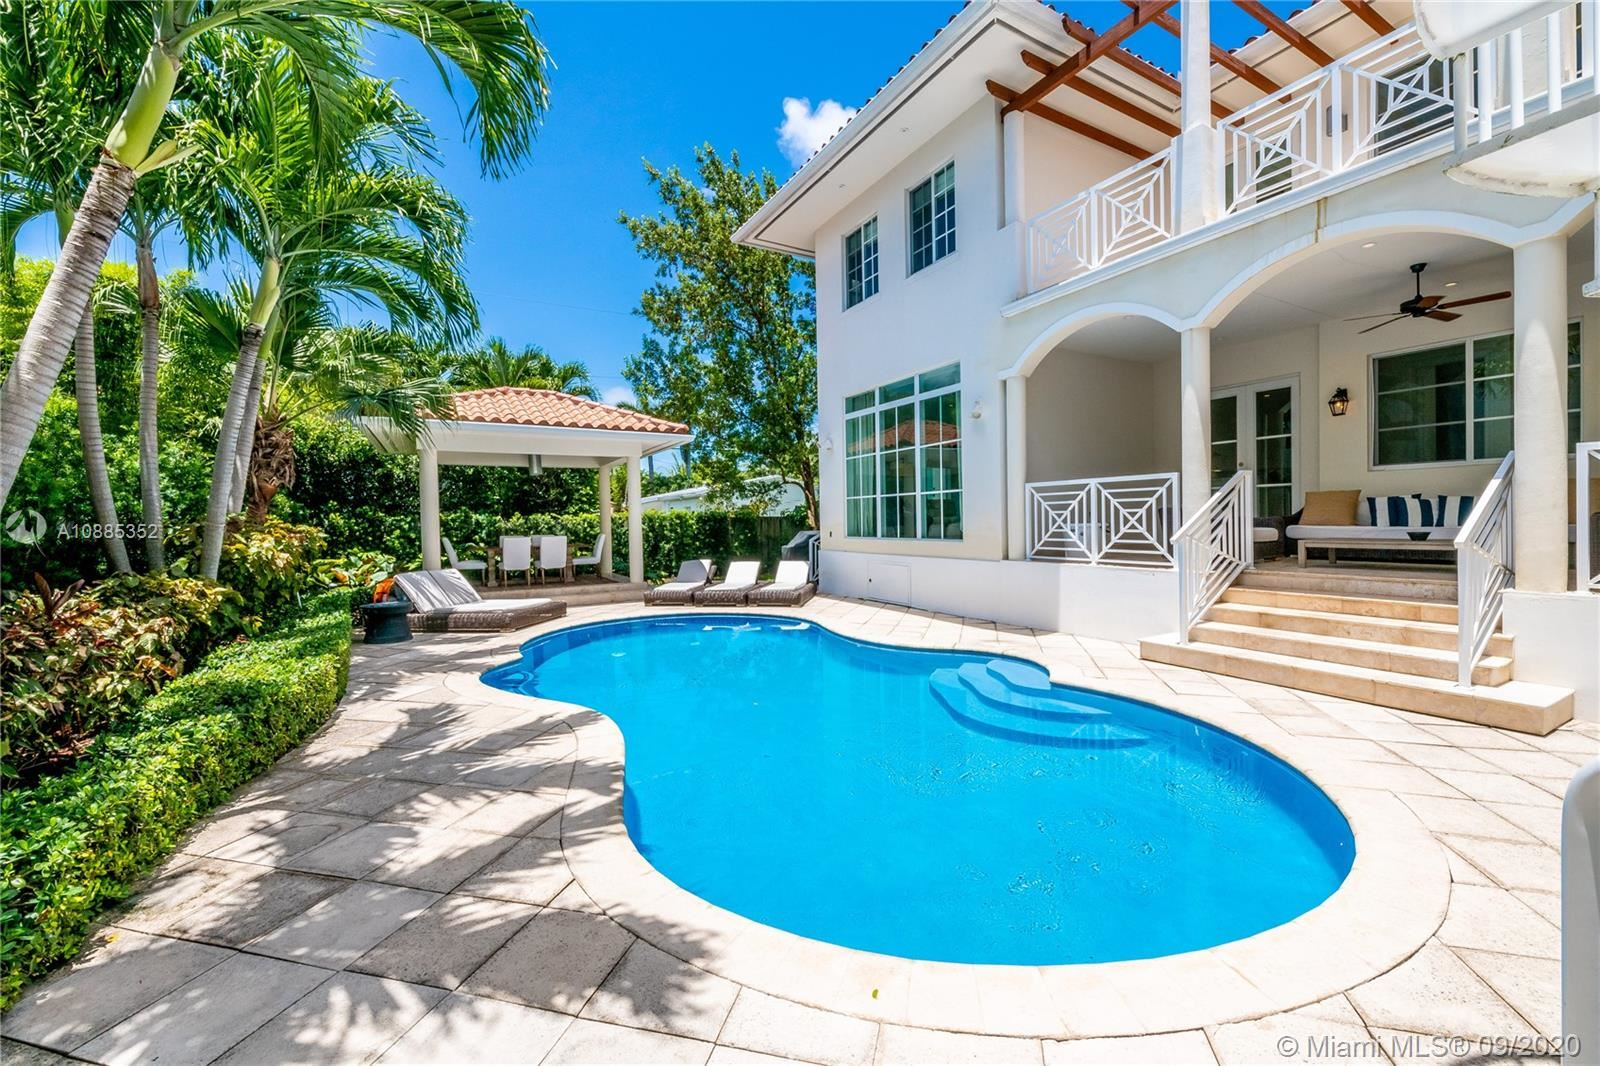 135 Woodcrest Ln, Key Biscayne, FL 33149 - #: A10885352